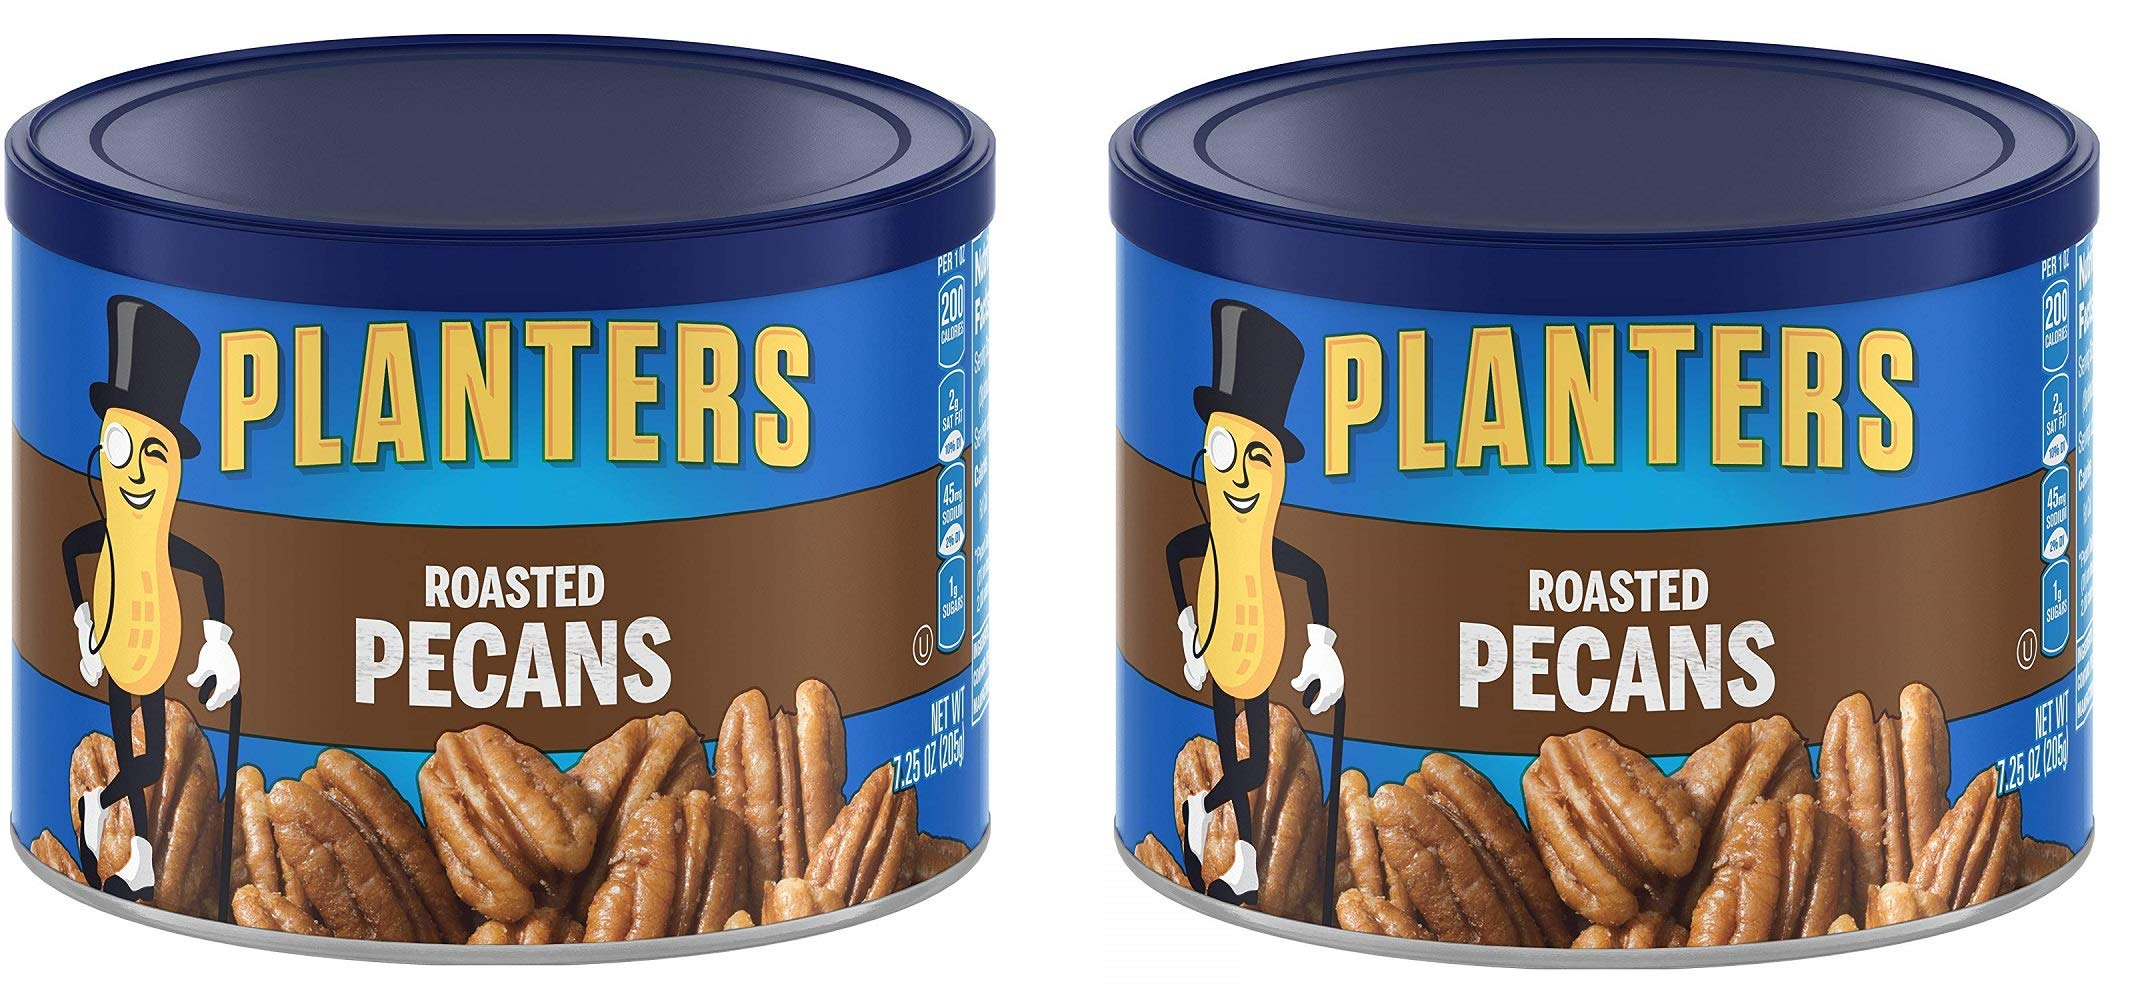 Planters Pecans, Roasted and Salted, 7.25 Ounce Canister, 2 Tubs